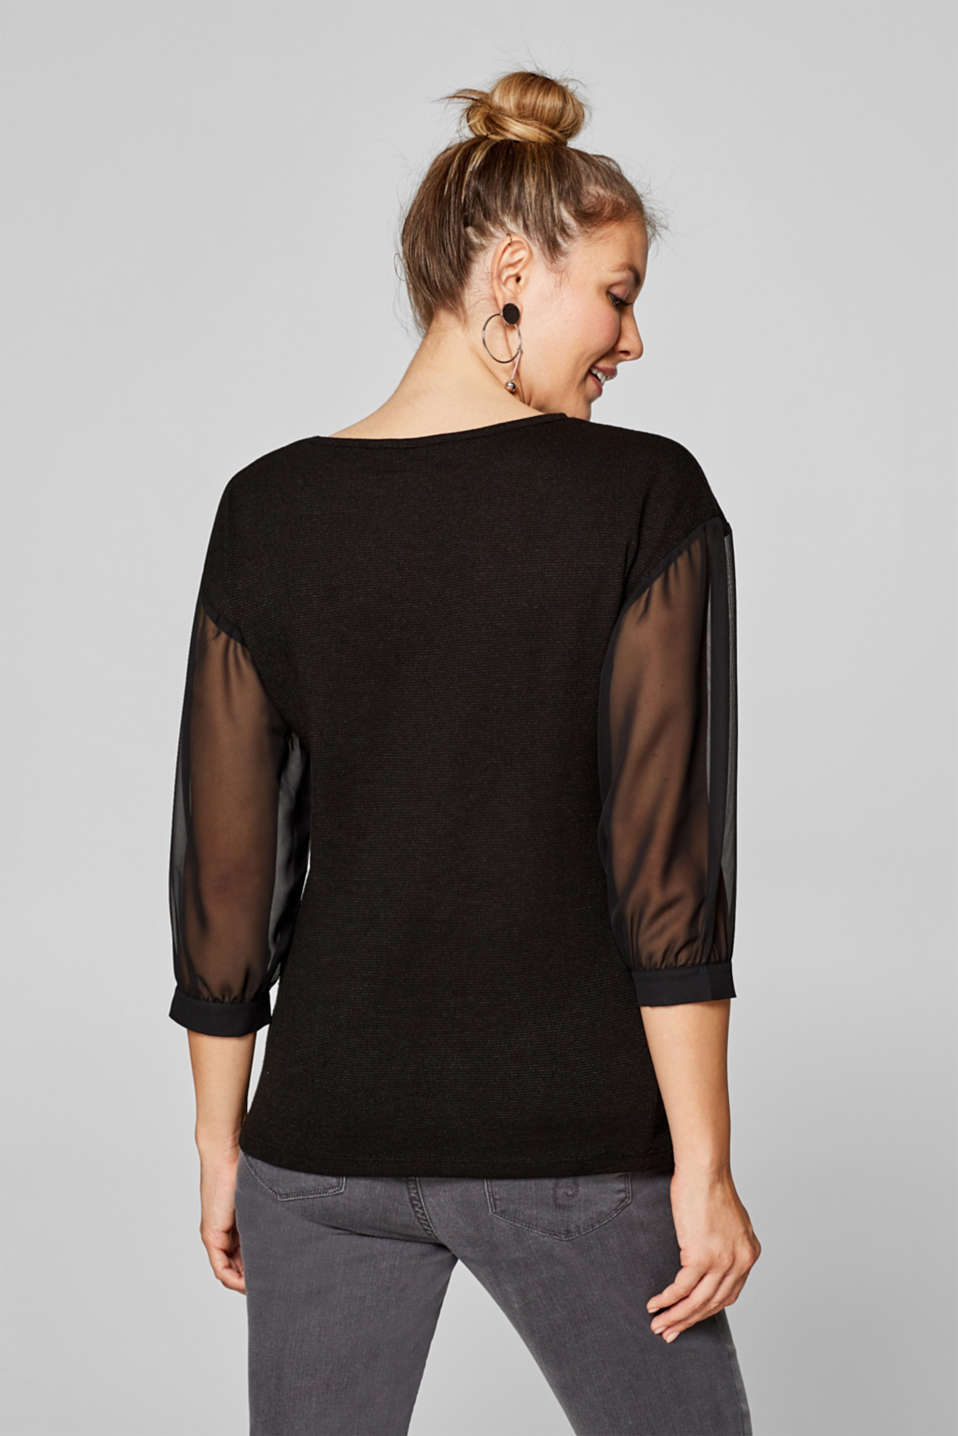 Textured top with chiffon sleeves, LCBLACK, detail image number 2